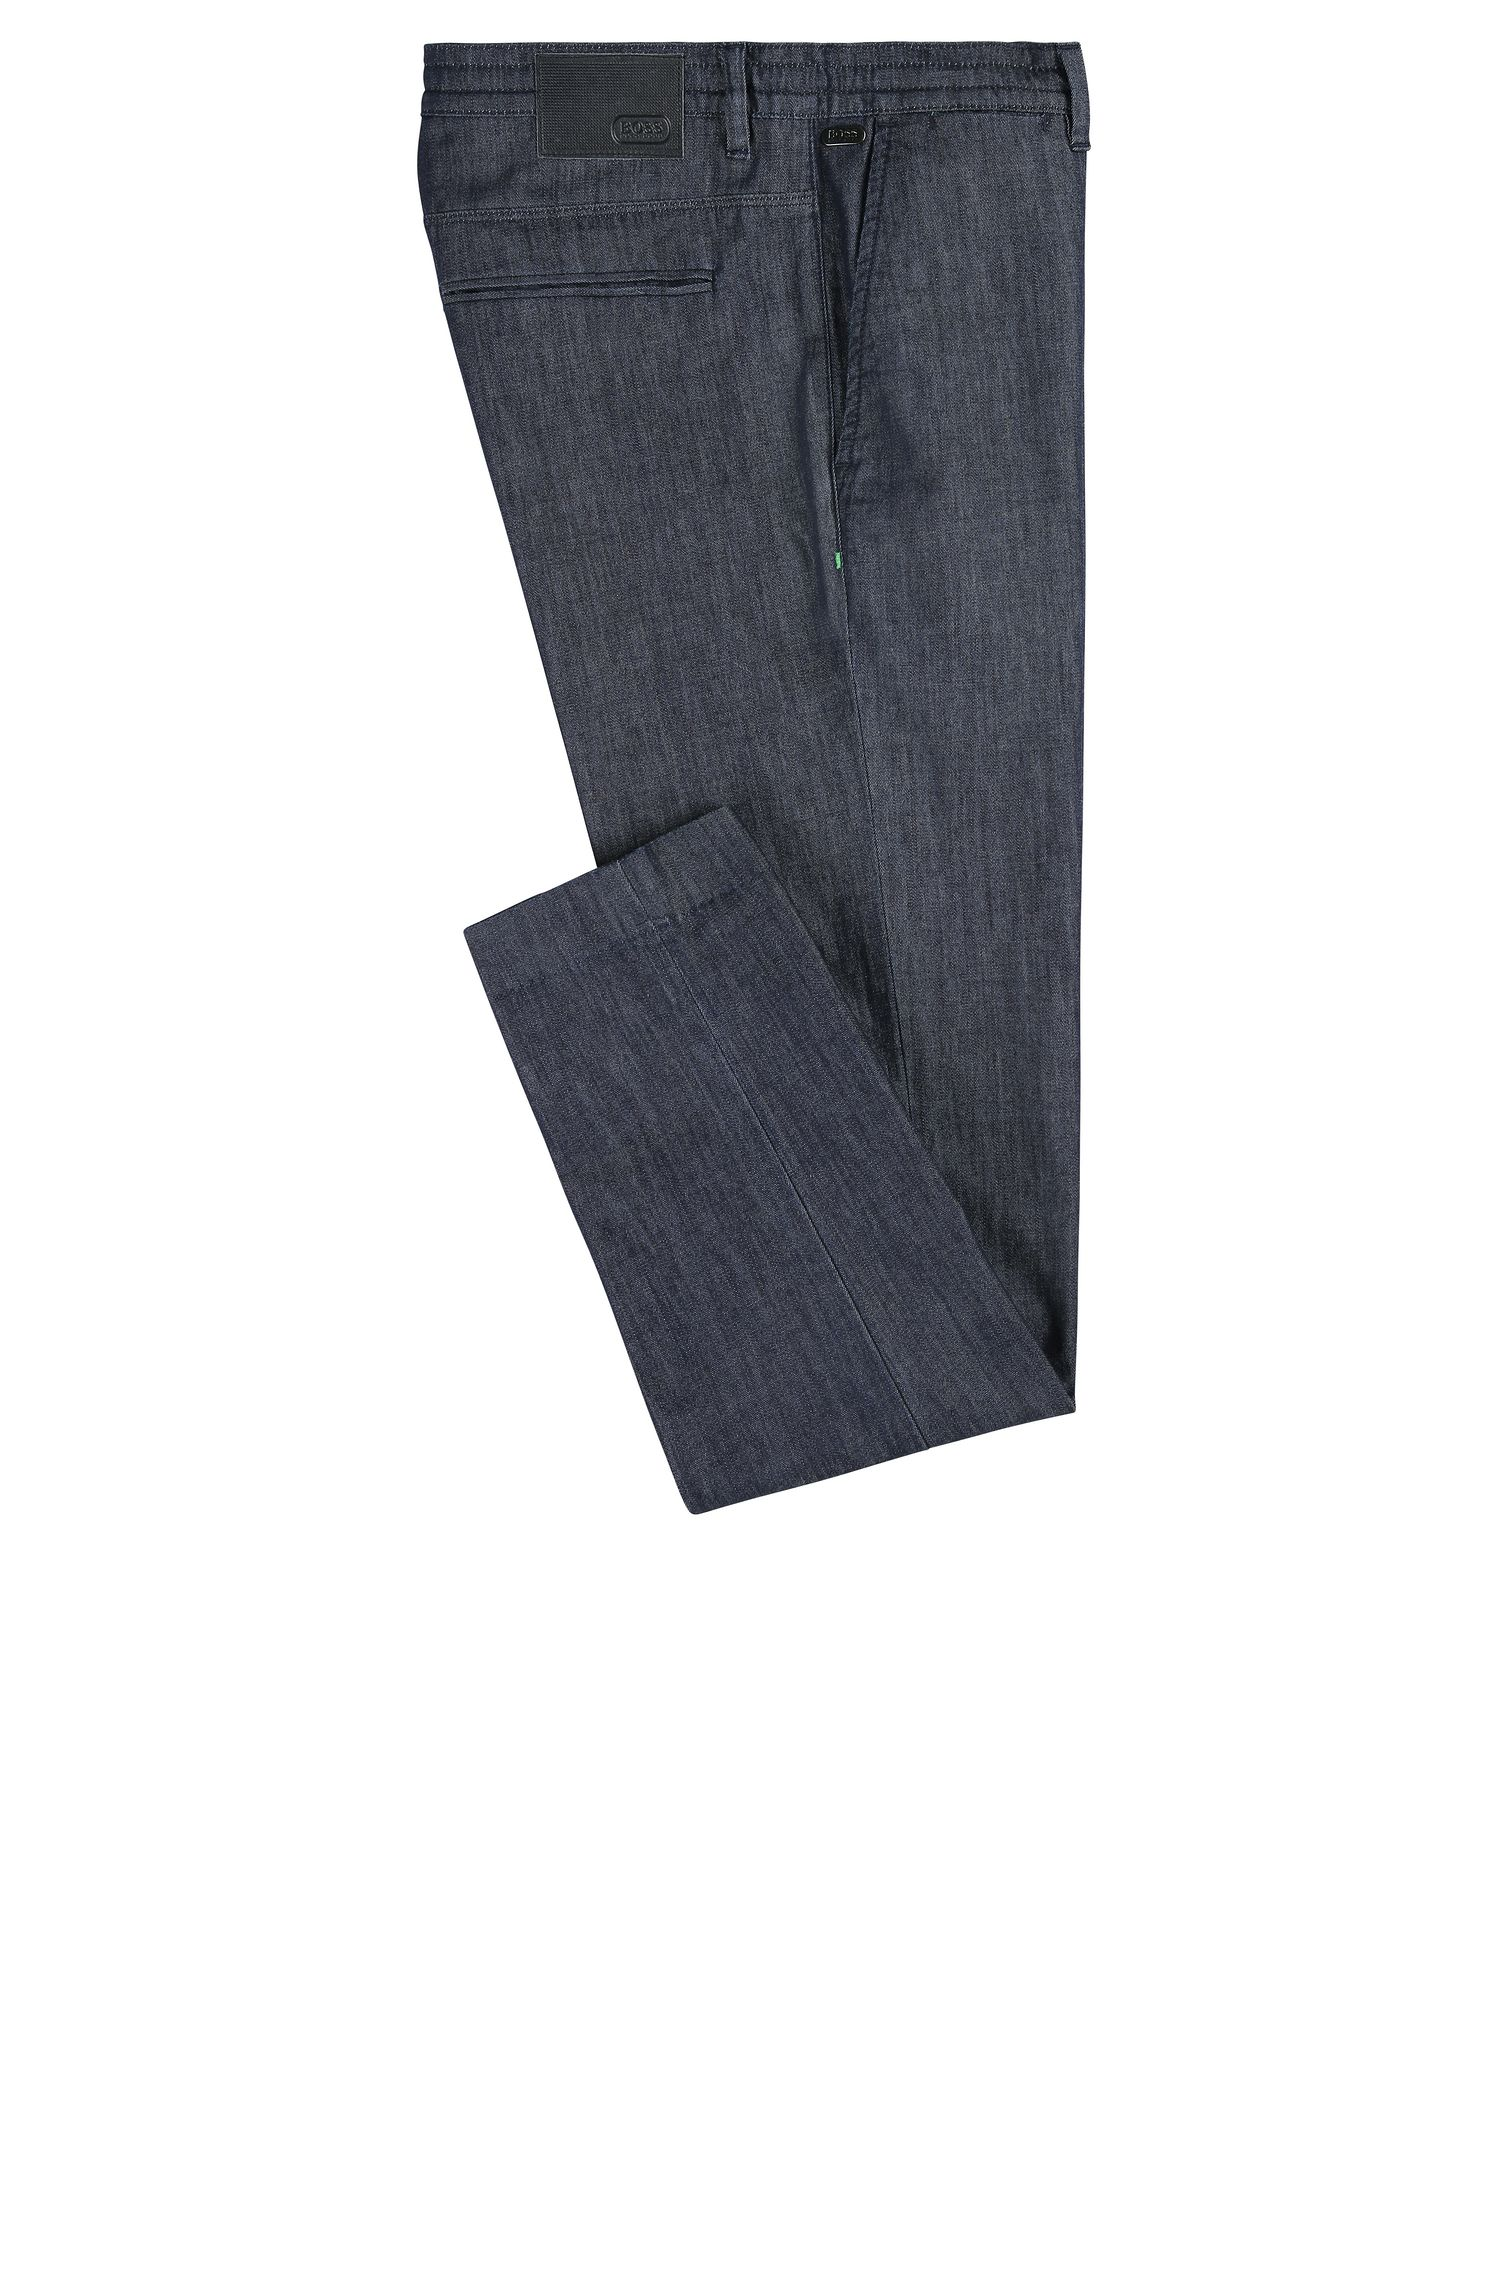 Stretch Cotton Blend Jean, Tapered Fit | Darrel